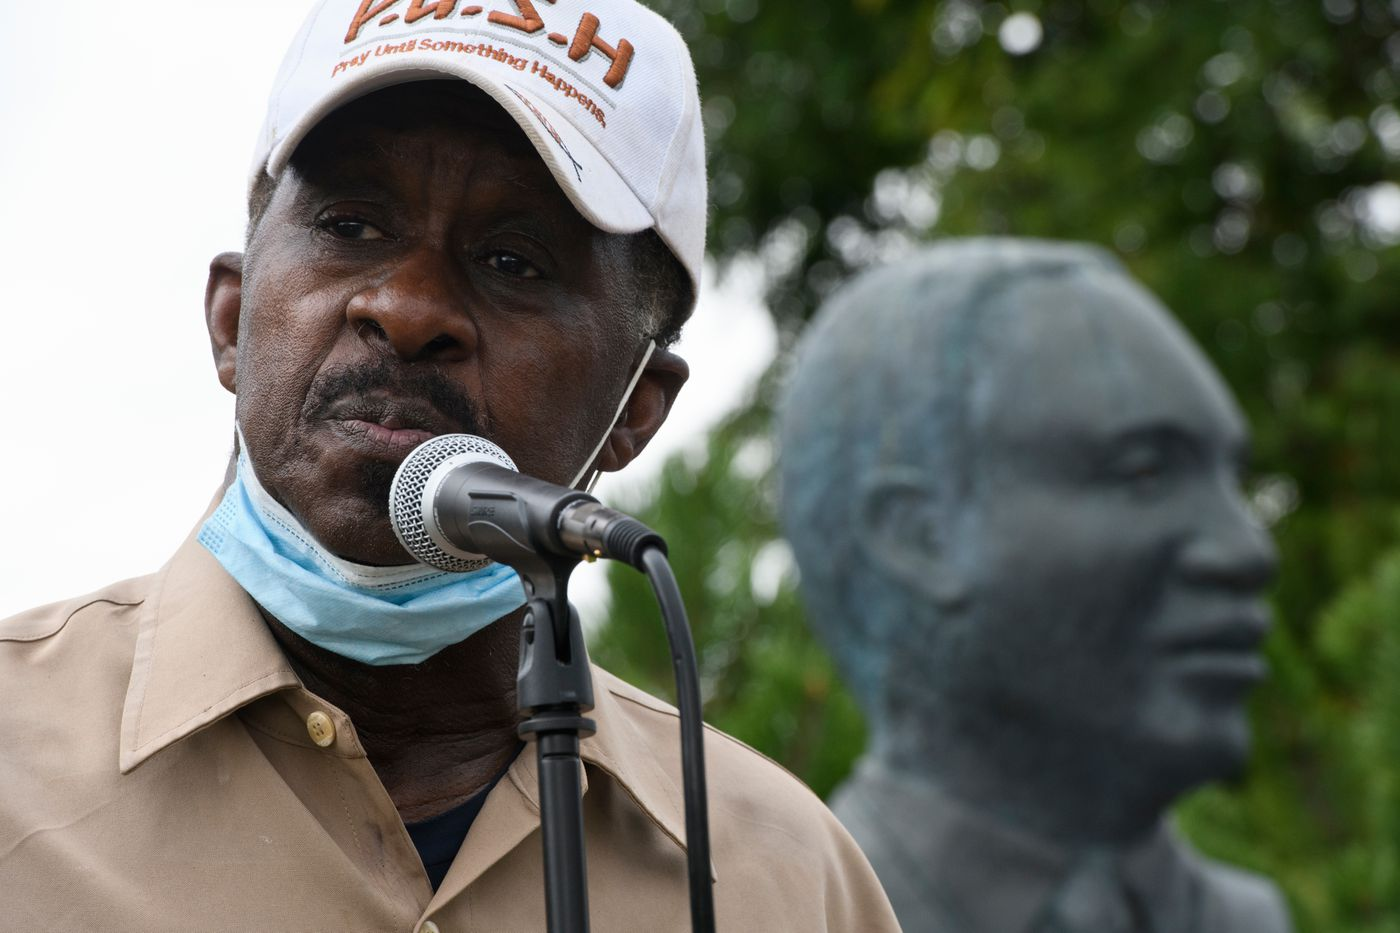 Rev. Alonzo Patterson speaks at the Martin Luther King Jr. memorial on the Delaney Park Strip at the conclusion of the event. (Marc Lester / ADN)